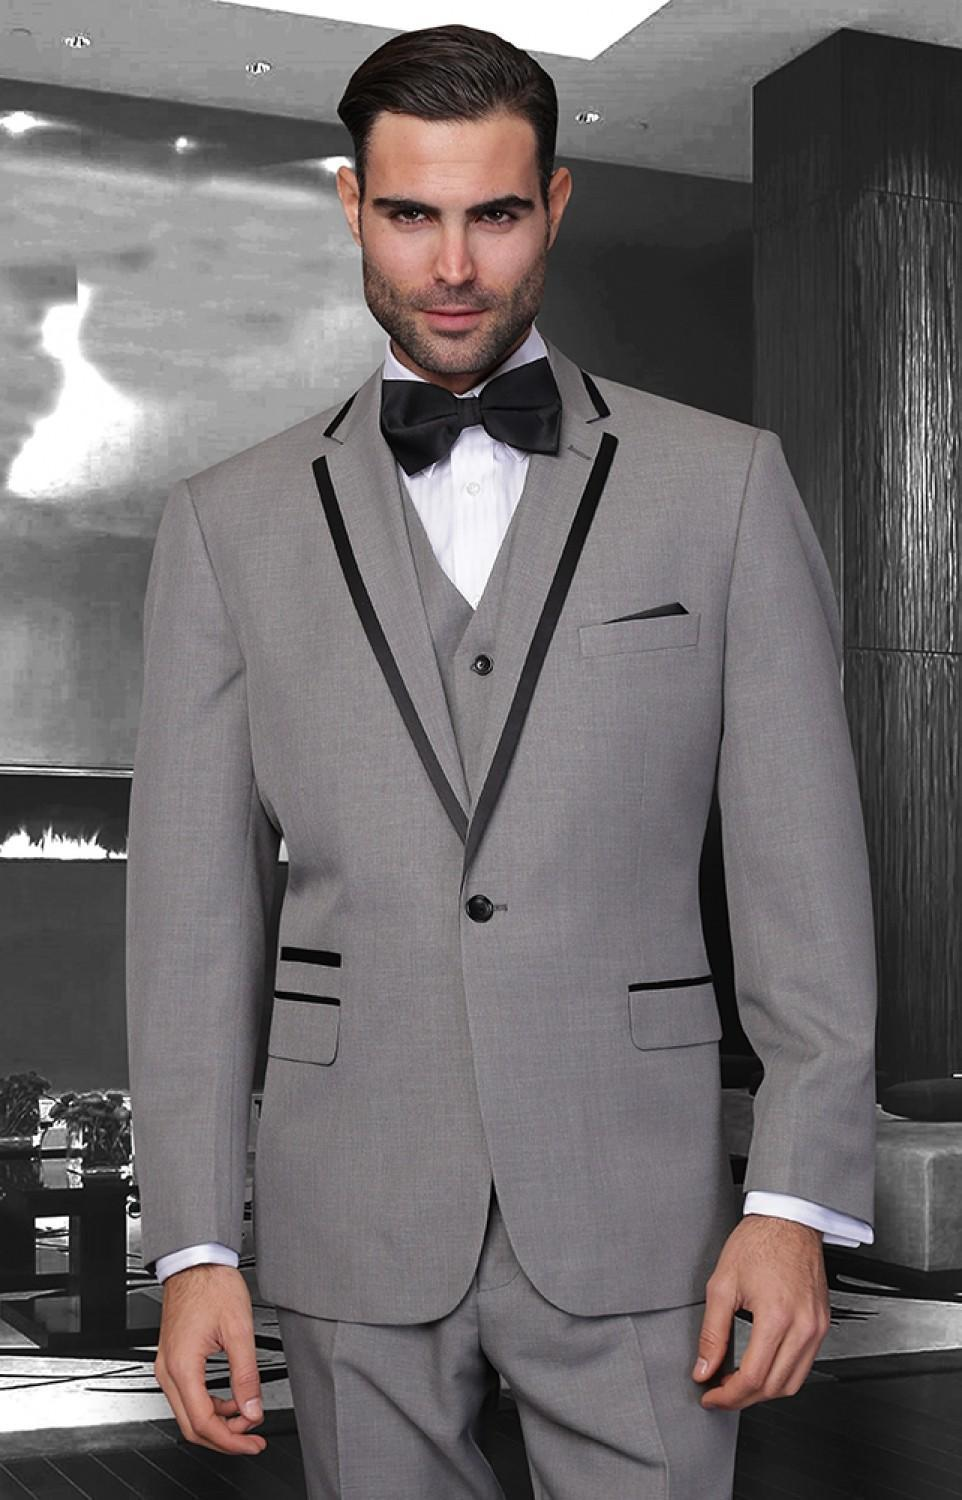 Groom Suits 2015 Tuxedos For Wedding Peak Lapel Groom Suits Handsome ...